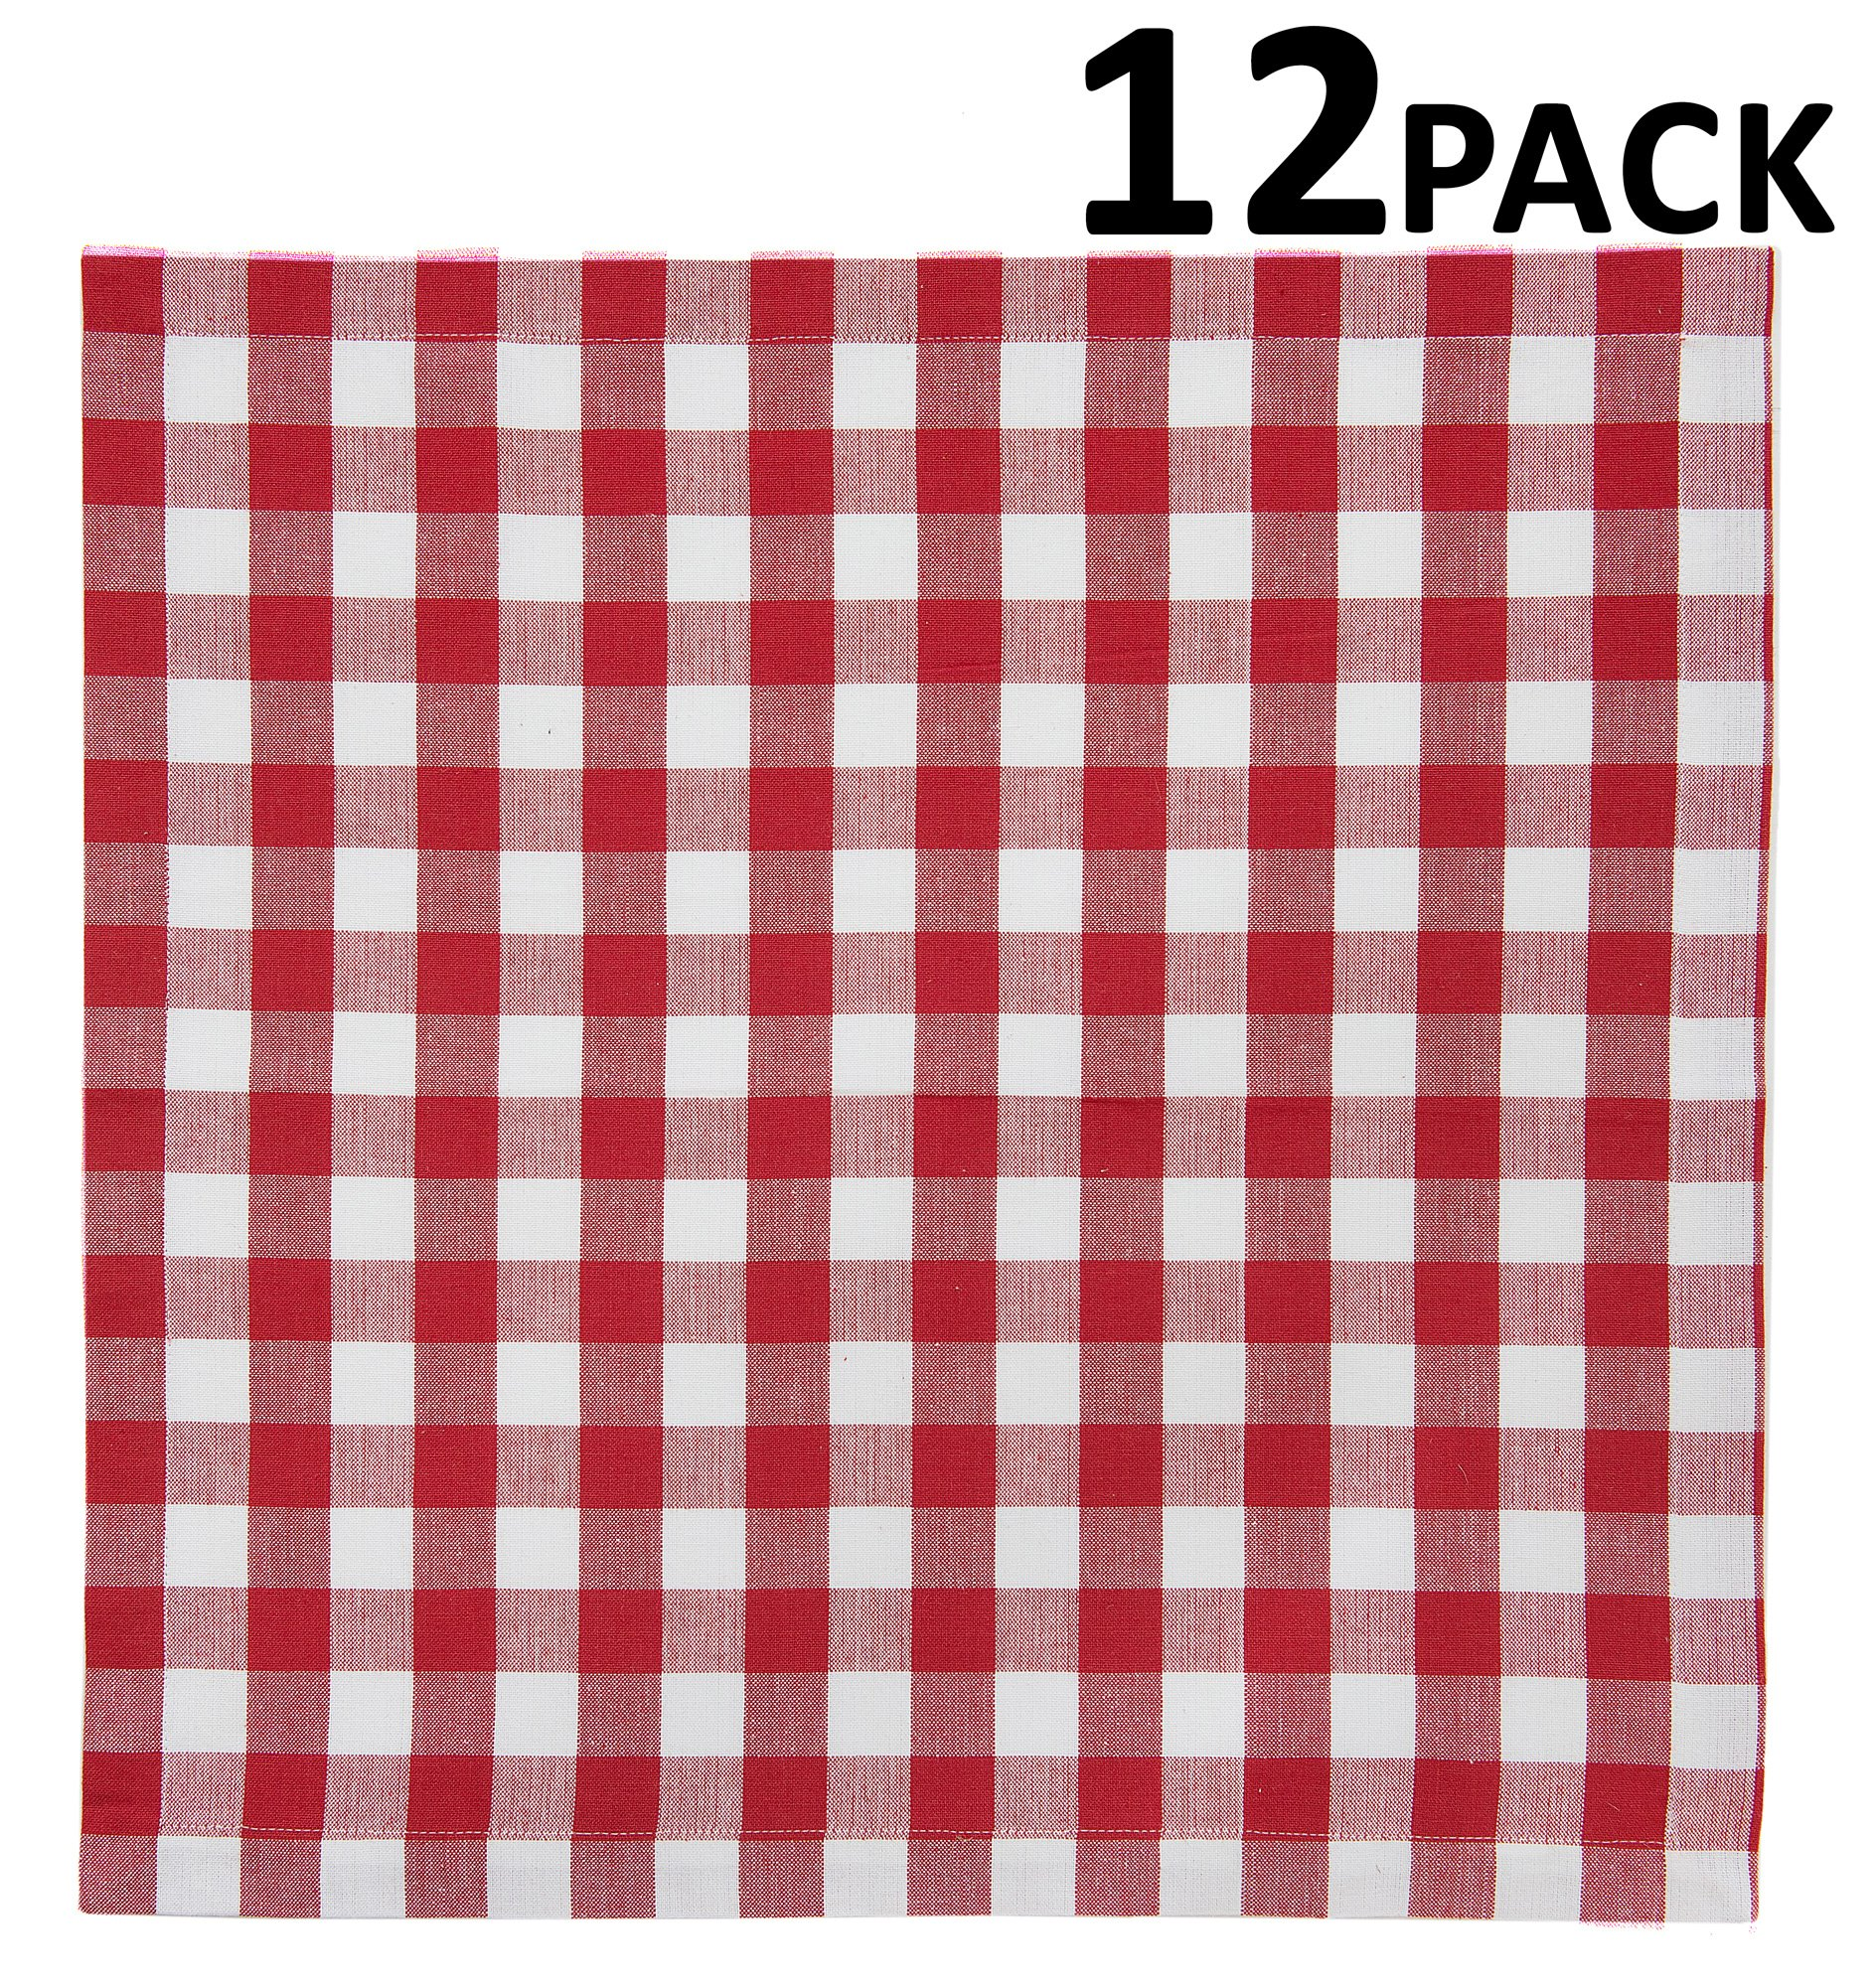 Cotton Craft 12 Pack Gingham Checks Oversized Dinner Napkins - Red - Size 20x20-100% Cotton - Tailored with mitered corners and a generous hem - Easy care machine wash by Cotton Craft (Image #2)